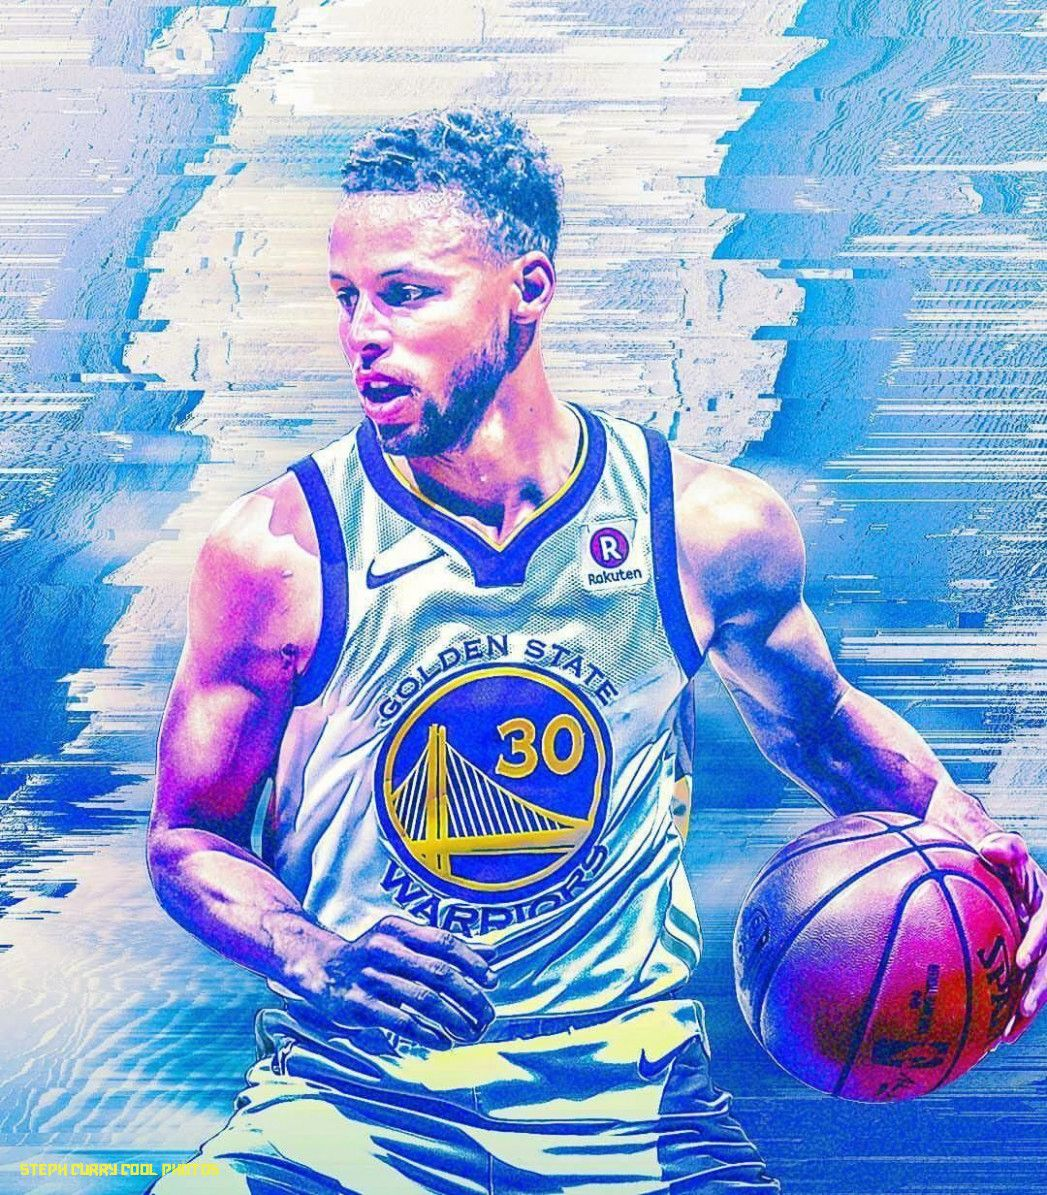 Stephen Curry Currybasketball Chinohillsbasketball With Images Steph Curry Cool Photos In 2020 Stephen Curry Stephen Curry Basketball Nba Stephen Curry